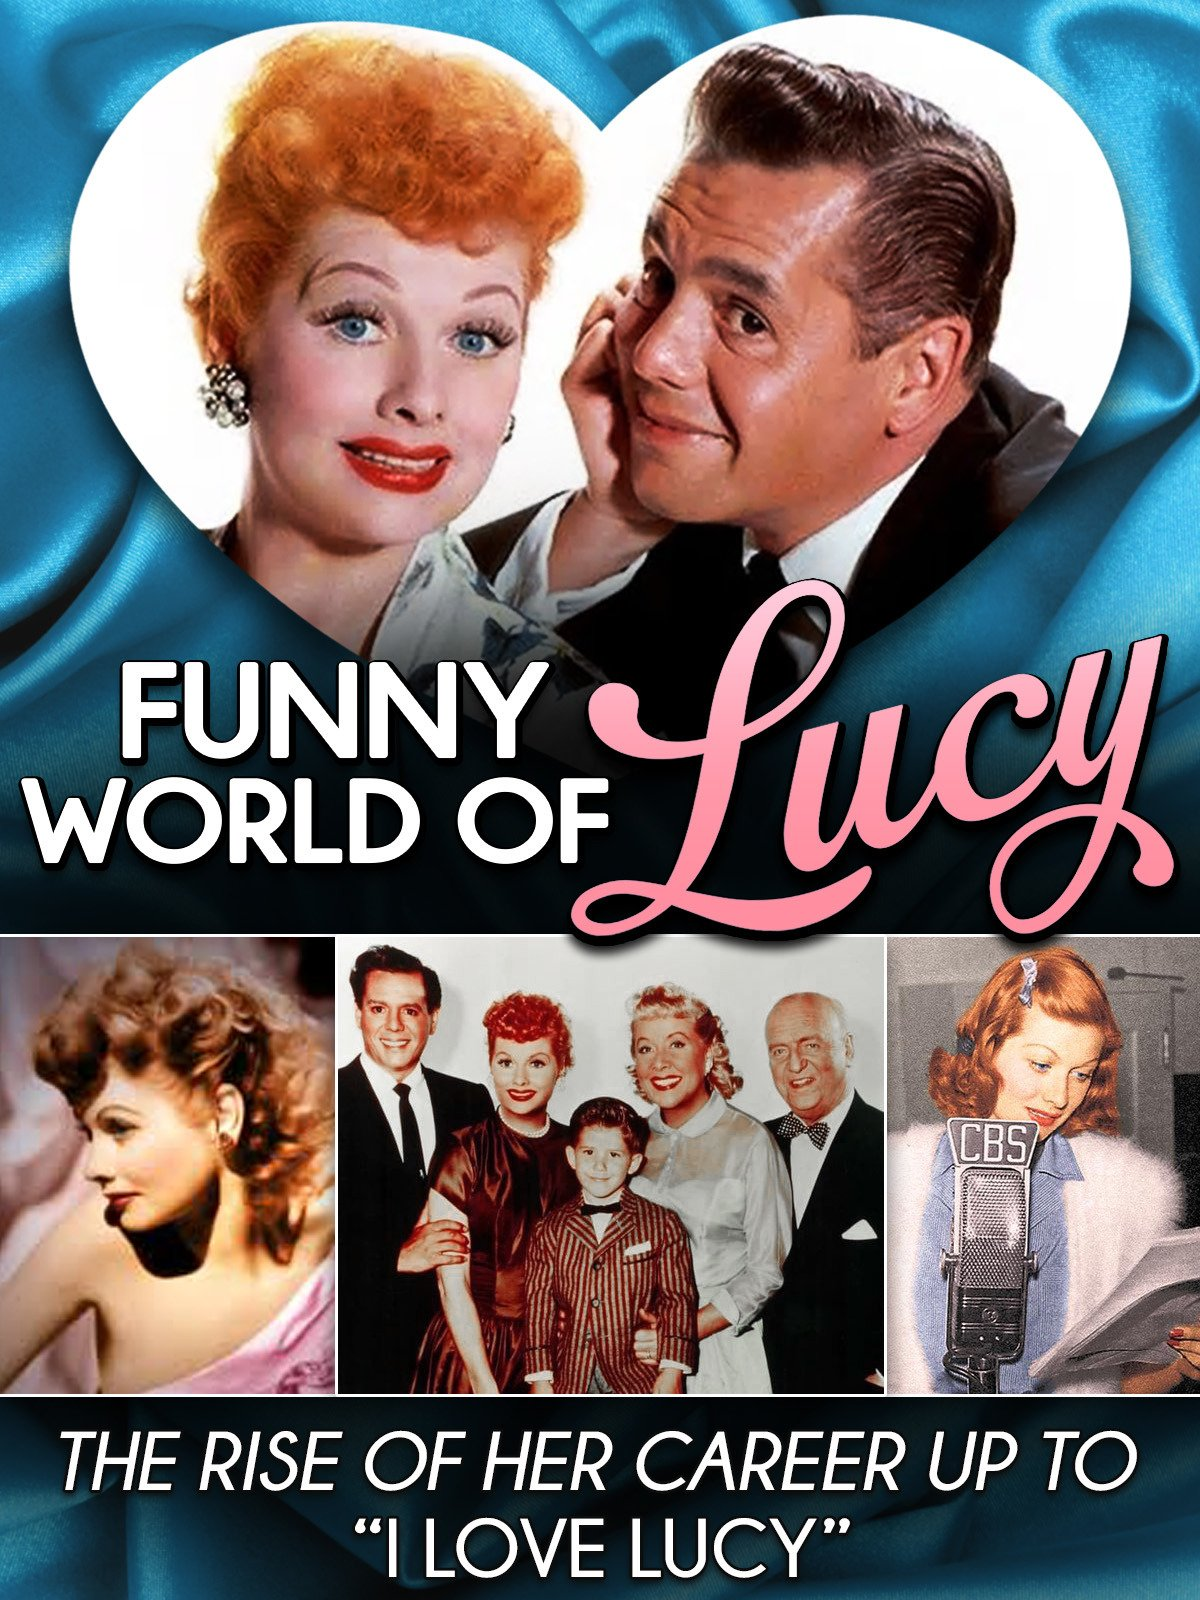 Funny World of Lucy...The Rise of Her Career Up To I Love Lucy